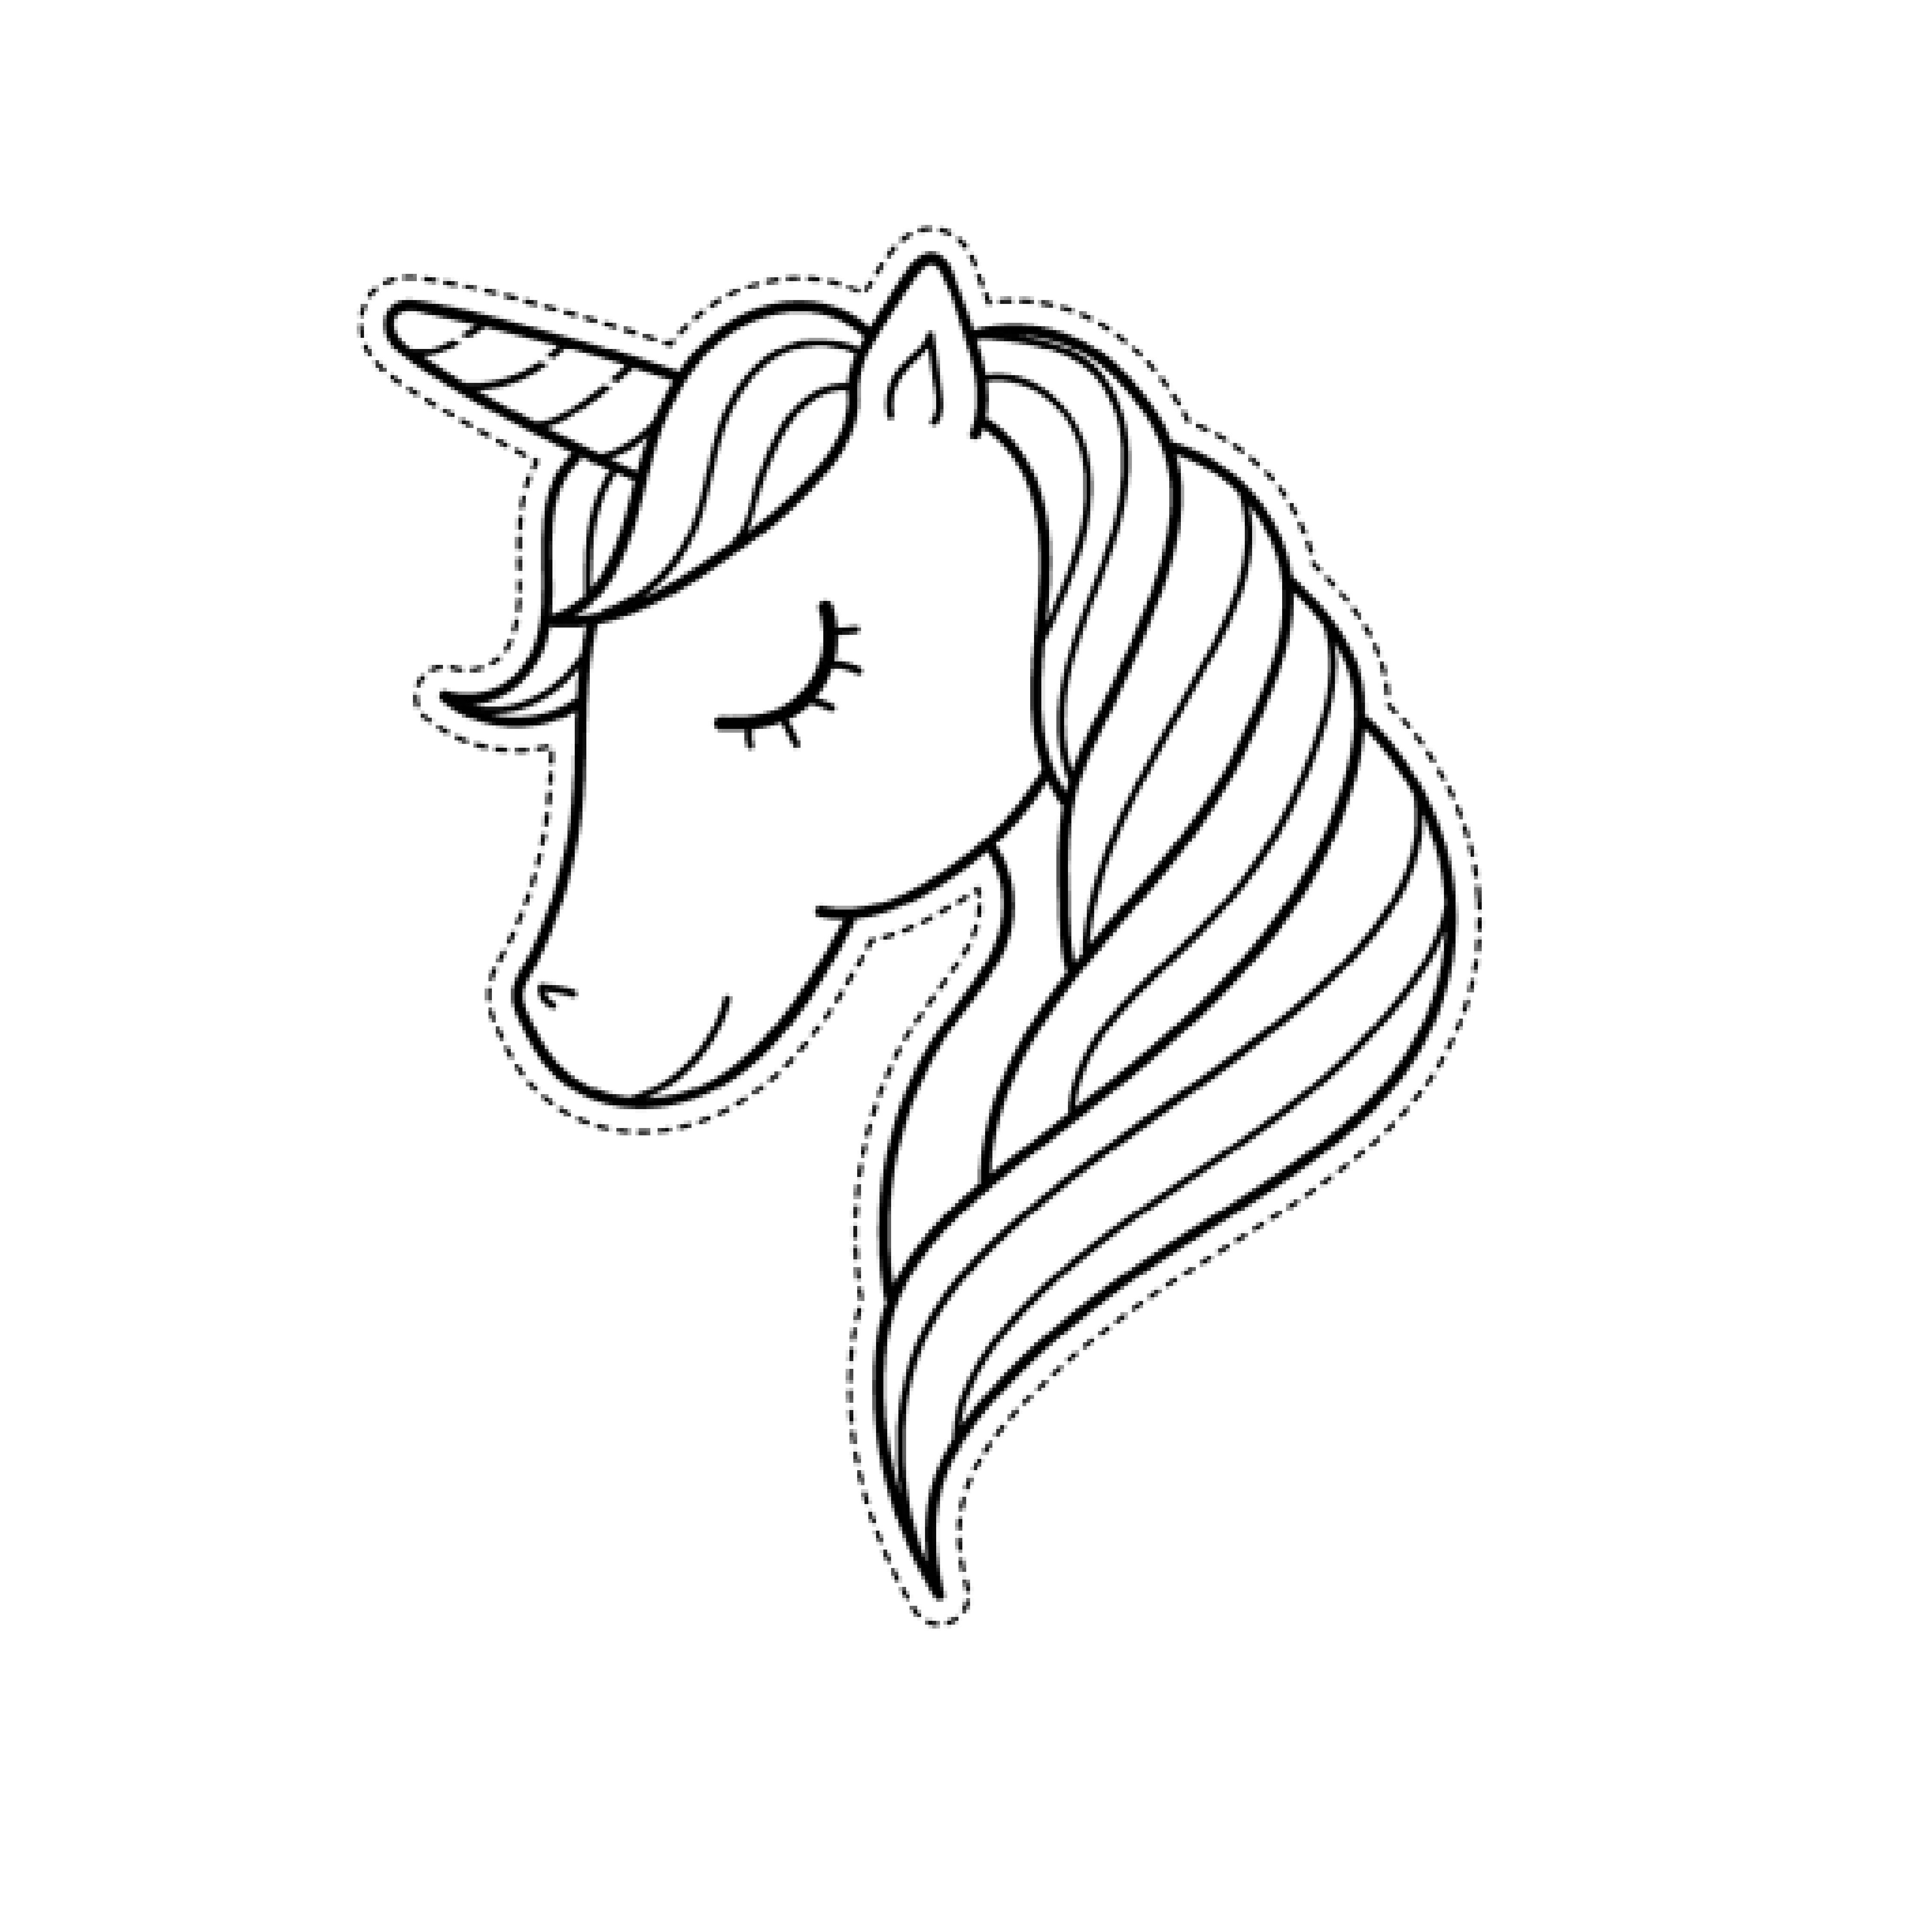 Kishorbiswas I Will Draw Detail Vector Line Art Of Your Image And Product For 5 On Fiverr Com In 2021 Unicorn Coloring Pages Unicorn Pictures Unicorn Coloring